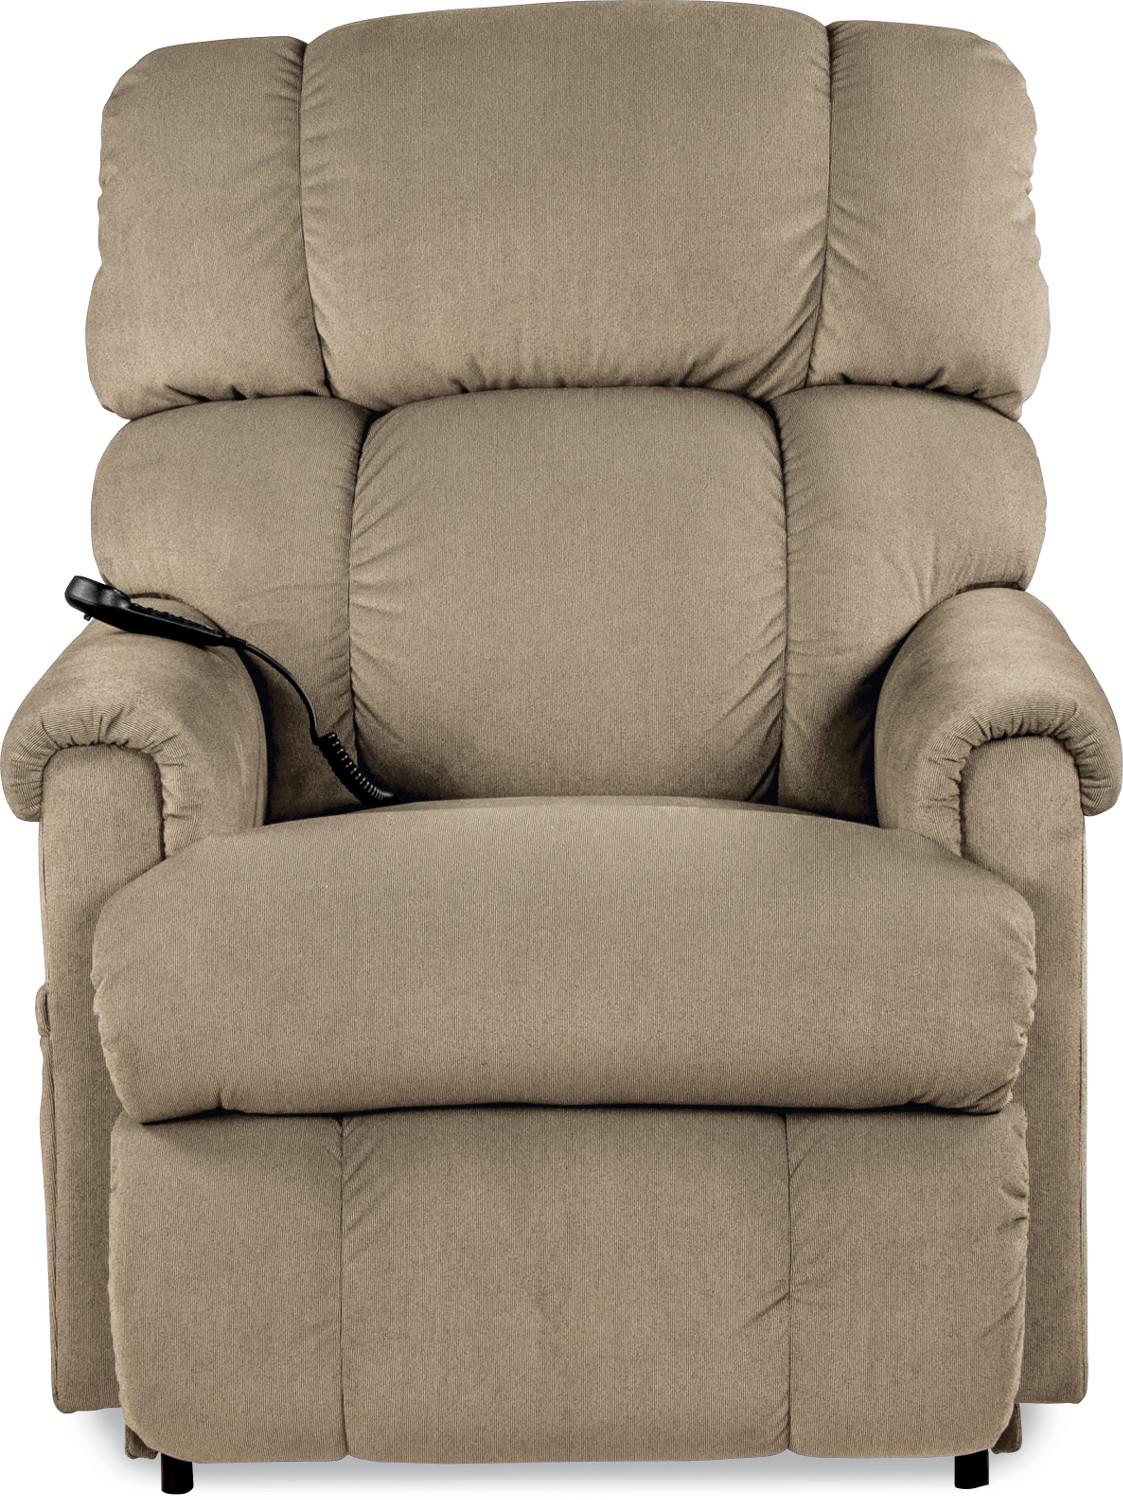 La Z Boy Pinnacle Platinum Luxury Lift® Power Recline XR Recliner |  Boulevard Home Furnishings | Lift Chairs